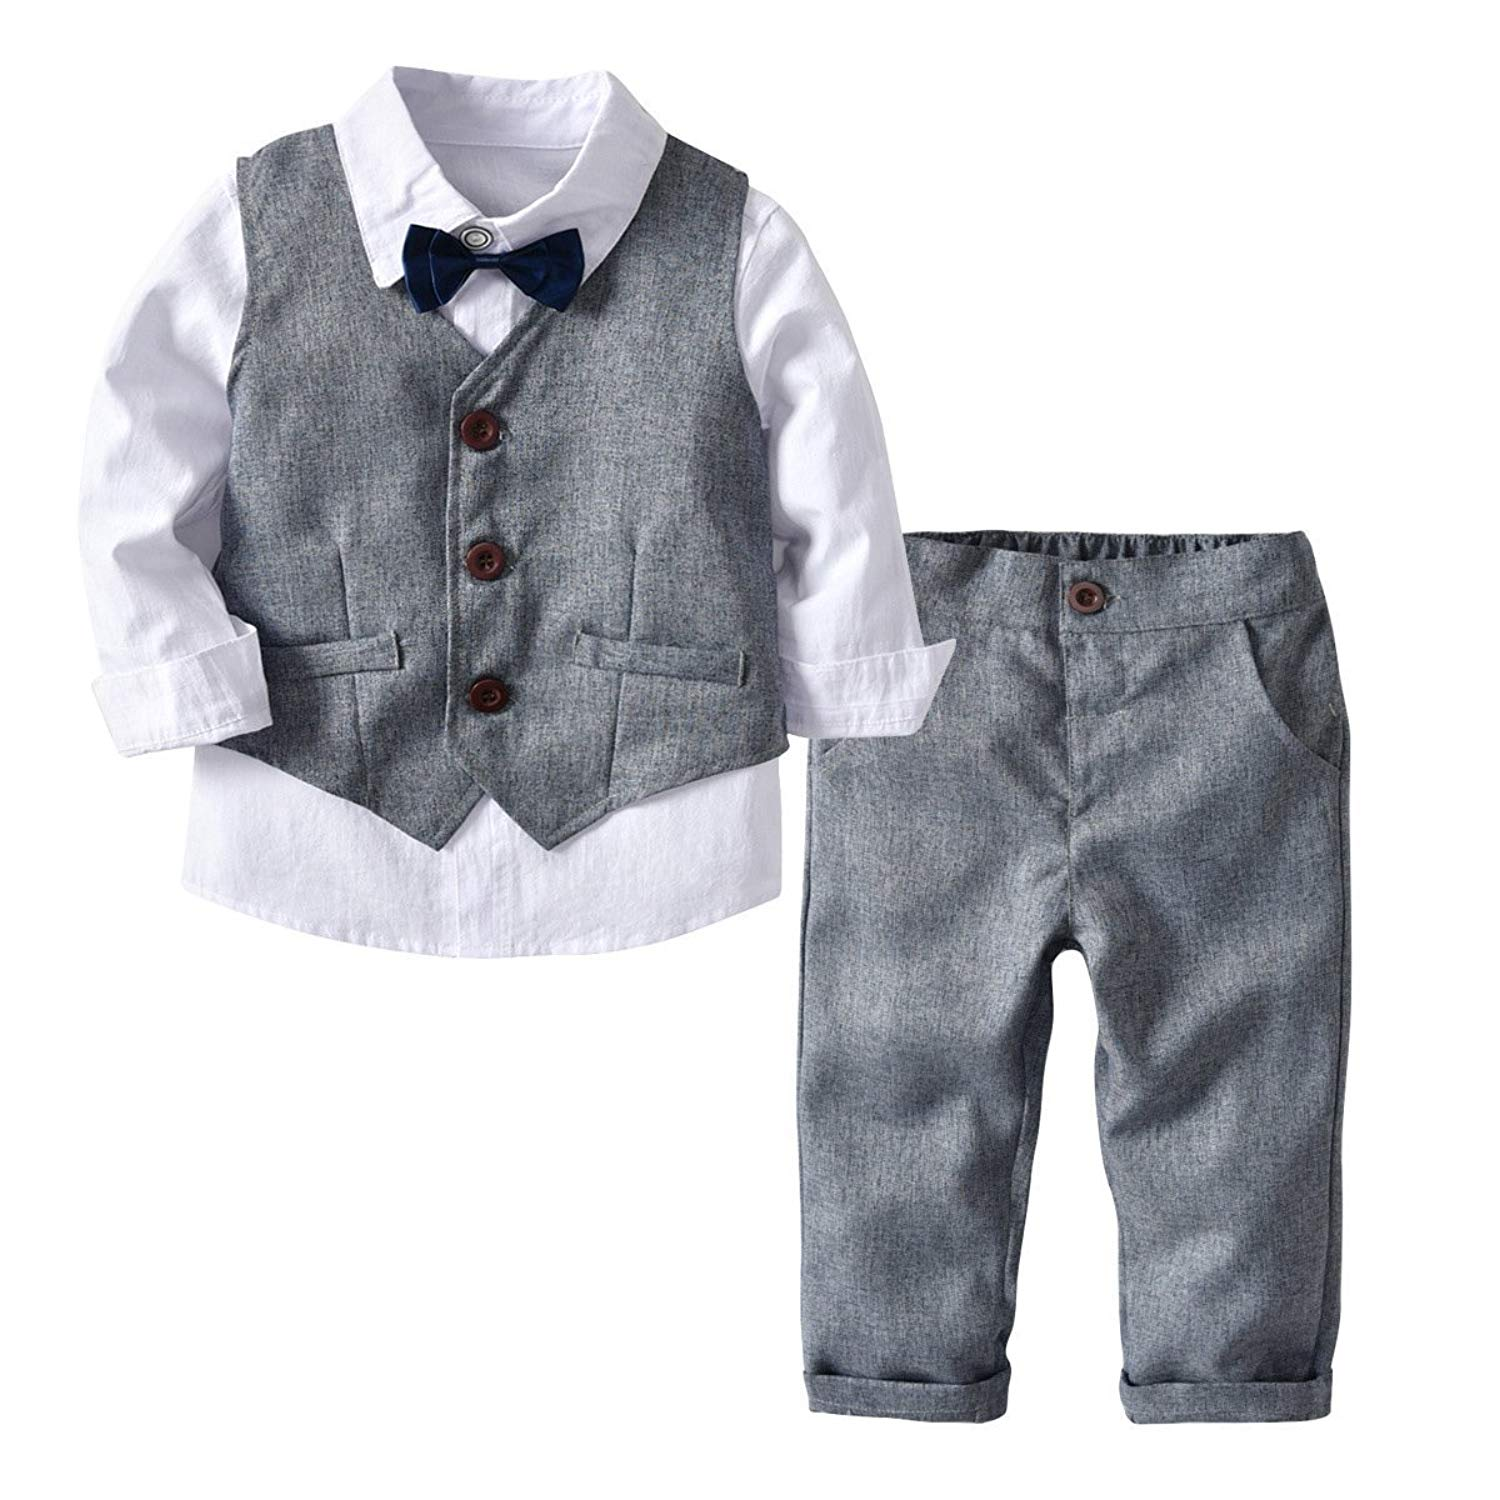 b4ceb5bb630fd Get Quotations · Kid Boy Formal Suit Long Sleeve Shirt with Bow Tie +  Waistcoat + Long Pants 3Pcs